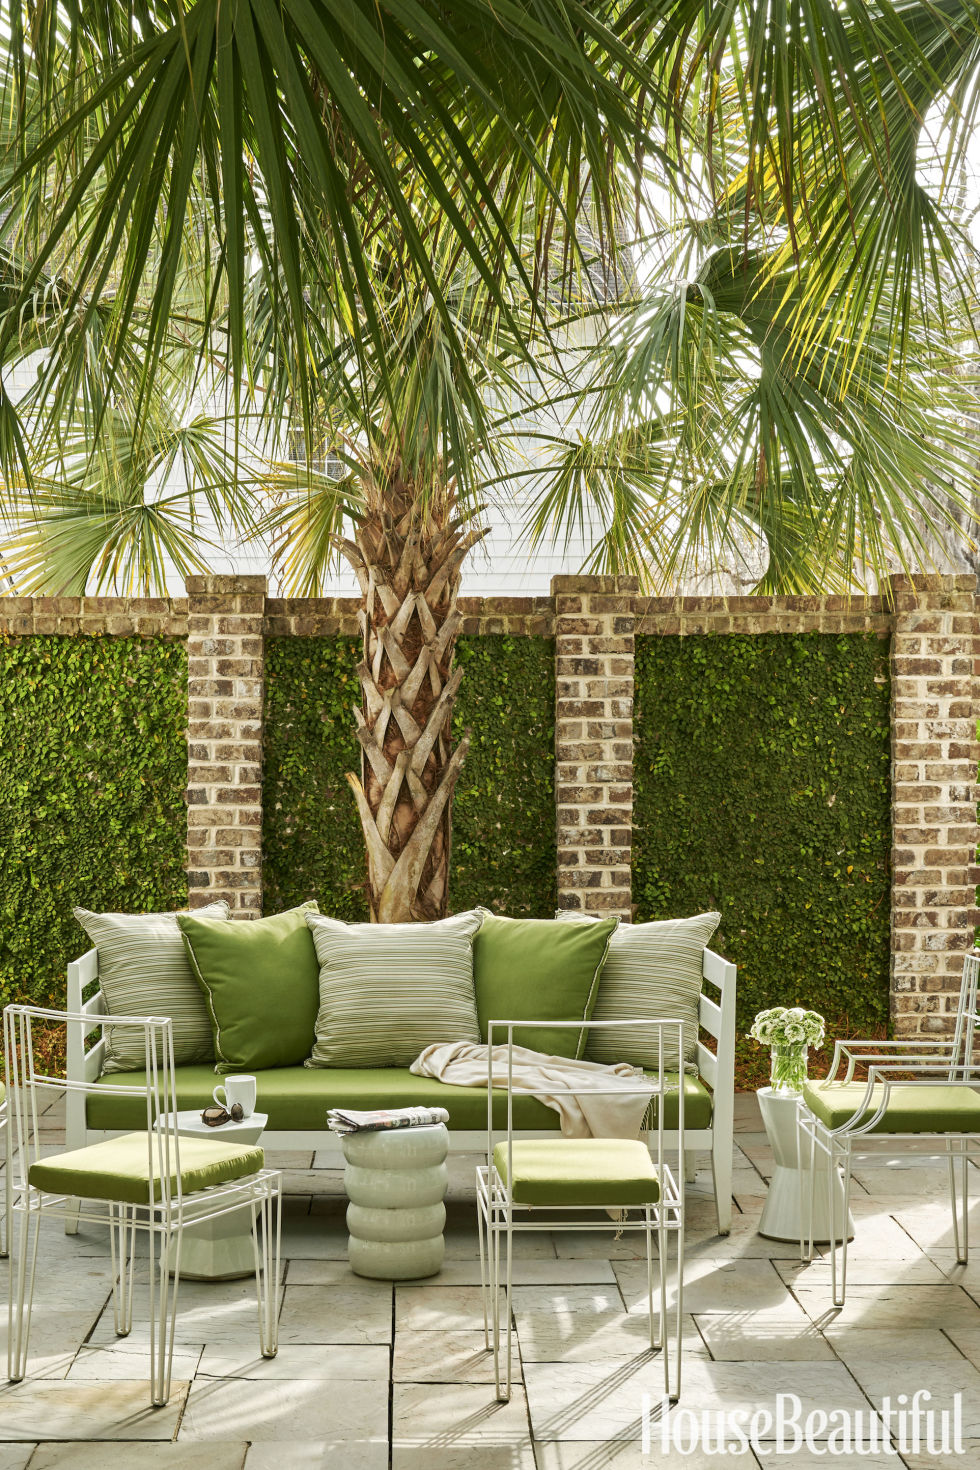 Outdoor Patio Living 85 patio and outdoor room design ideas and photos